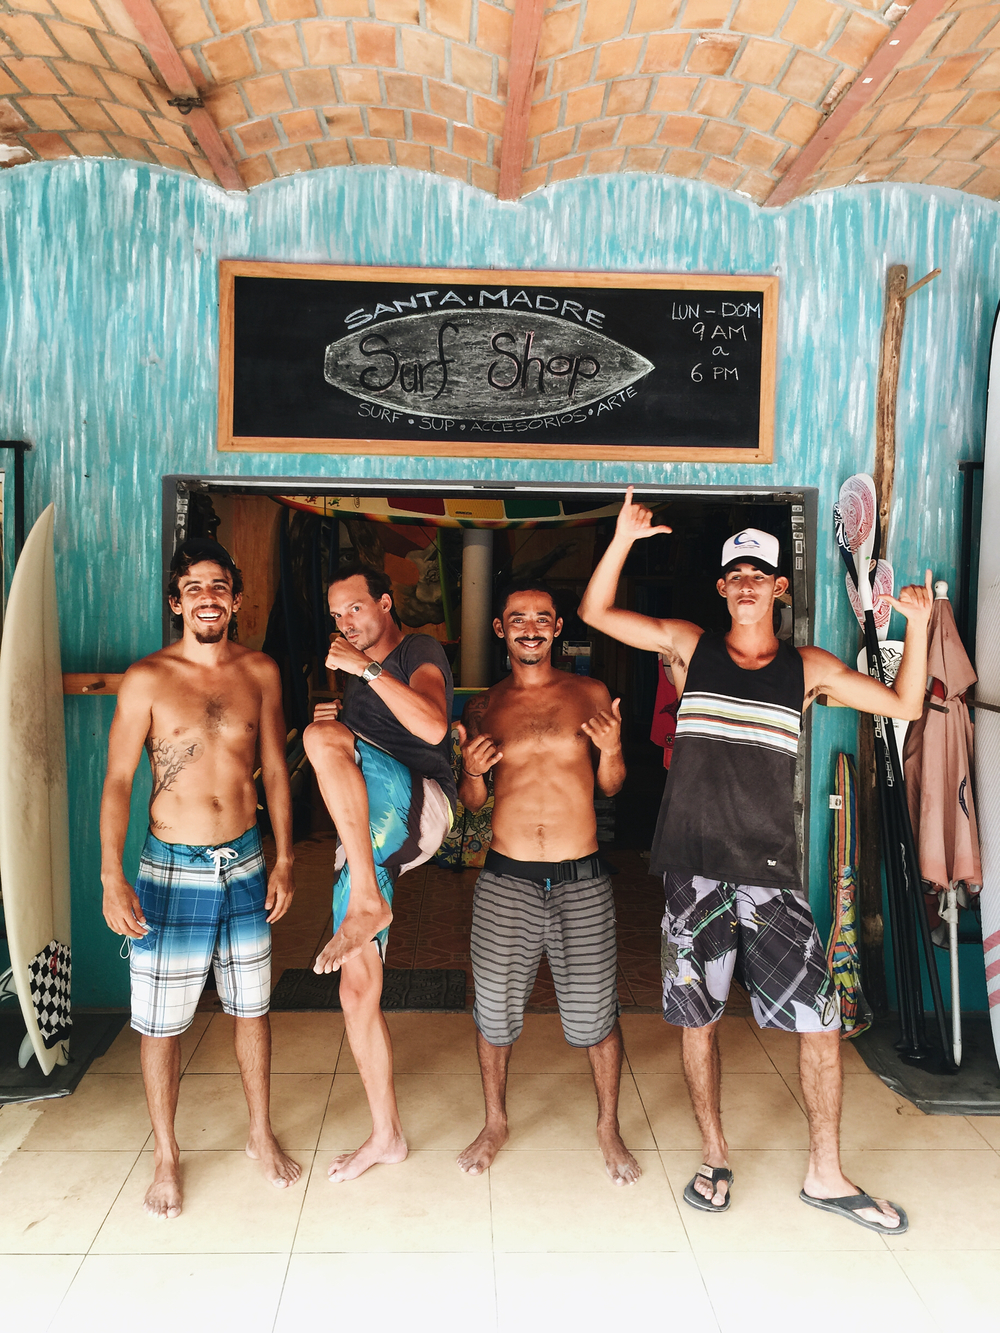 Meet your surf instructors from Santa Madre.